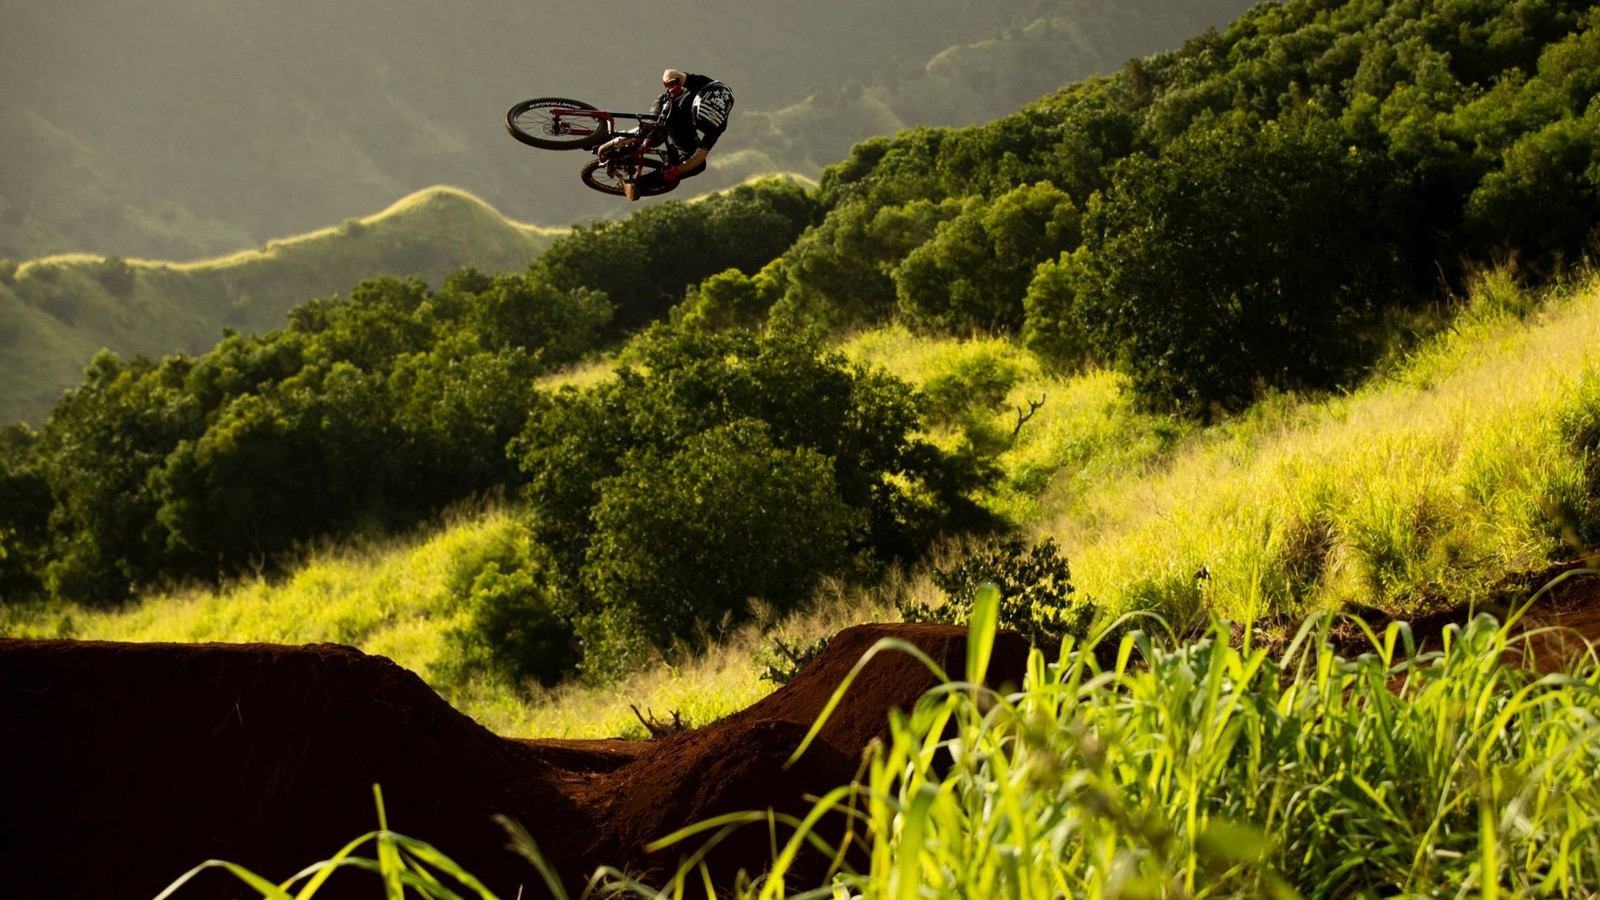 Return to Earth | A Mountain Bike Movie by Anthill Films